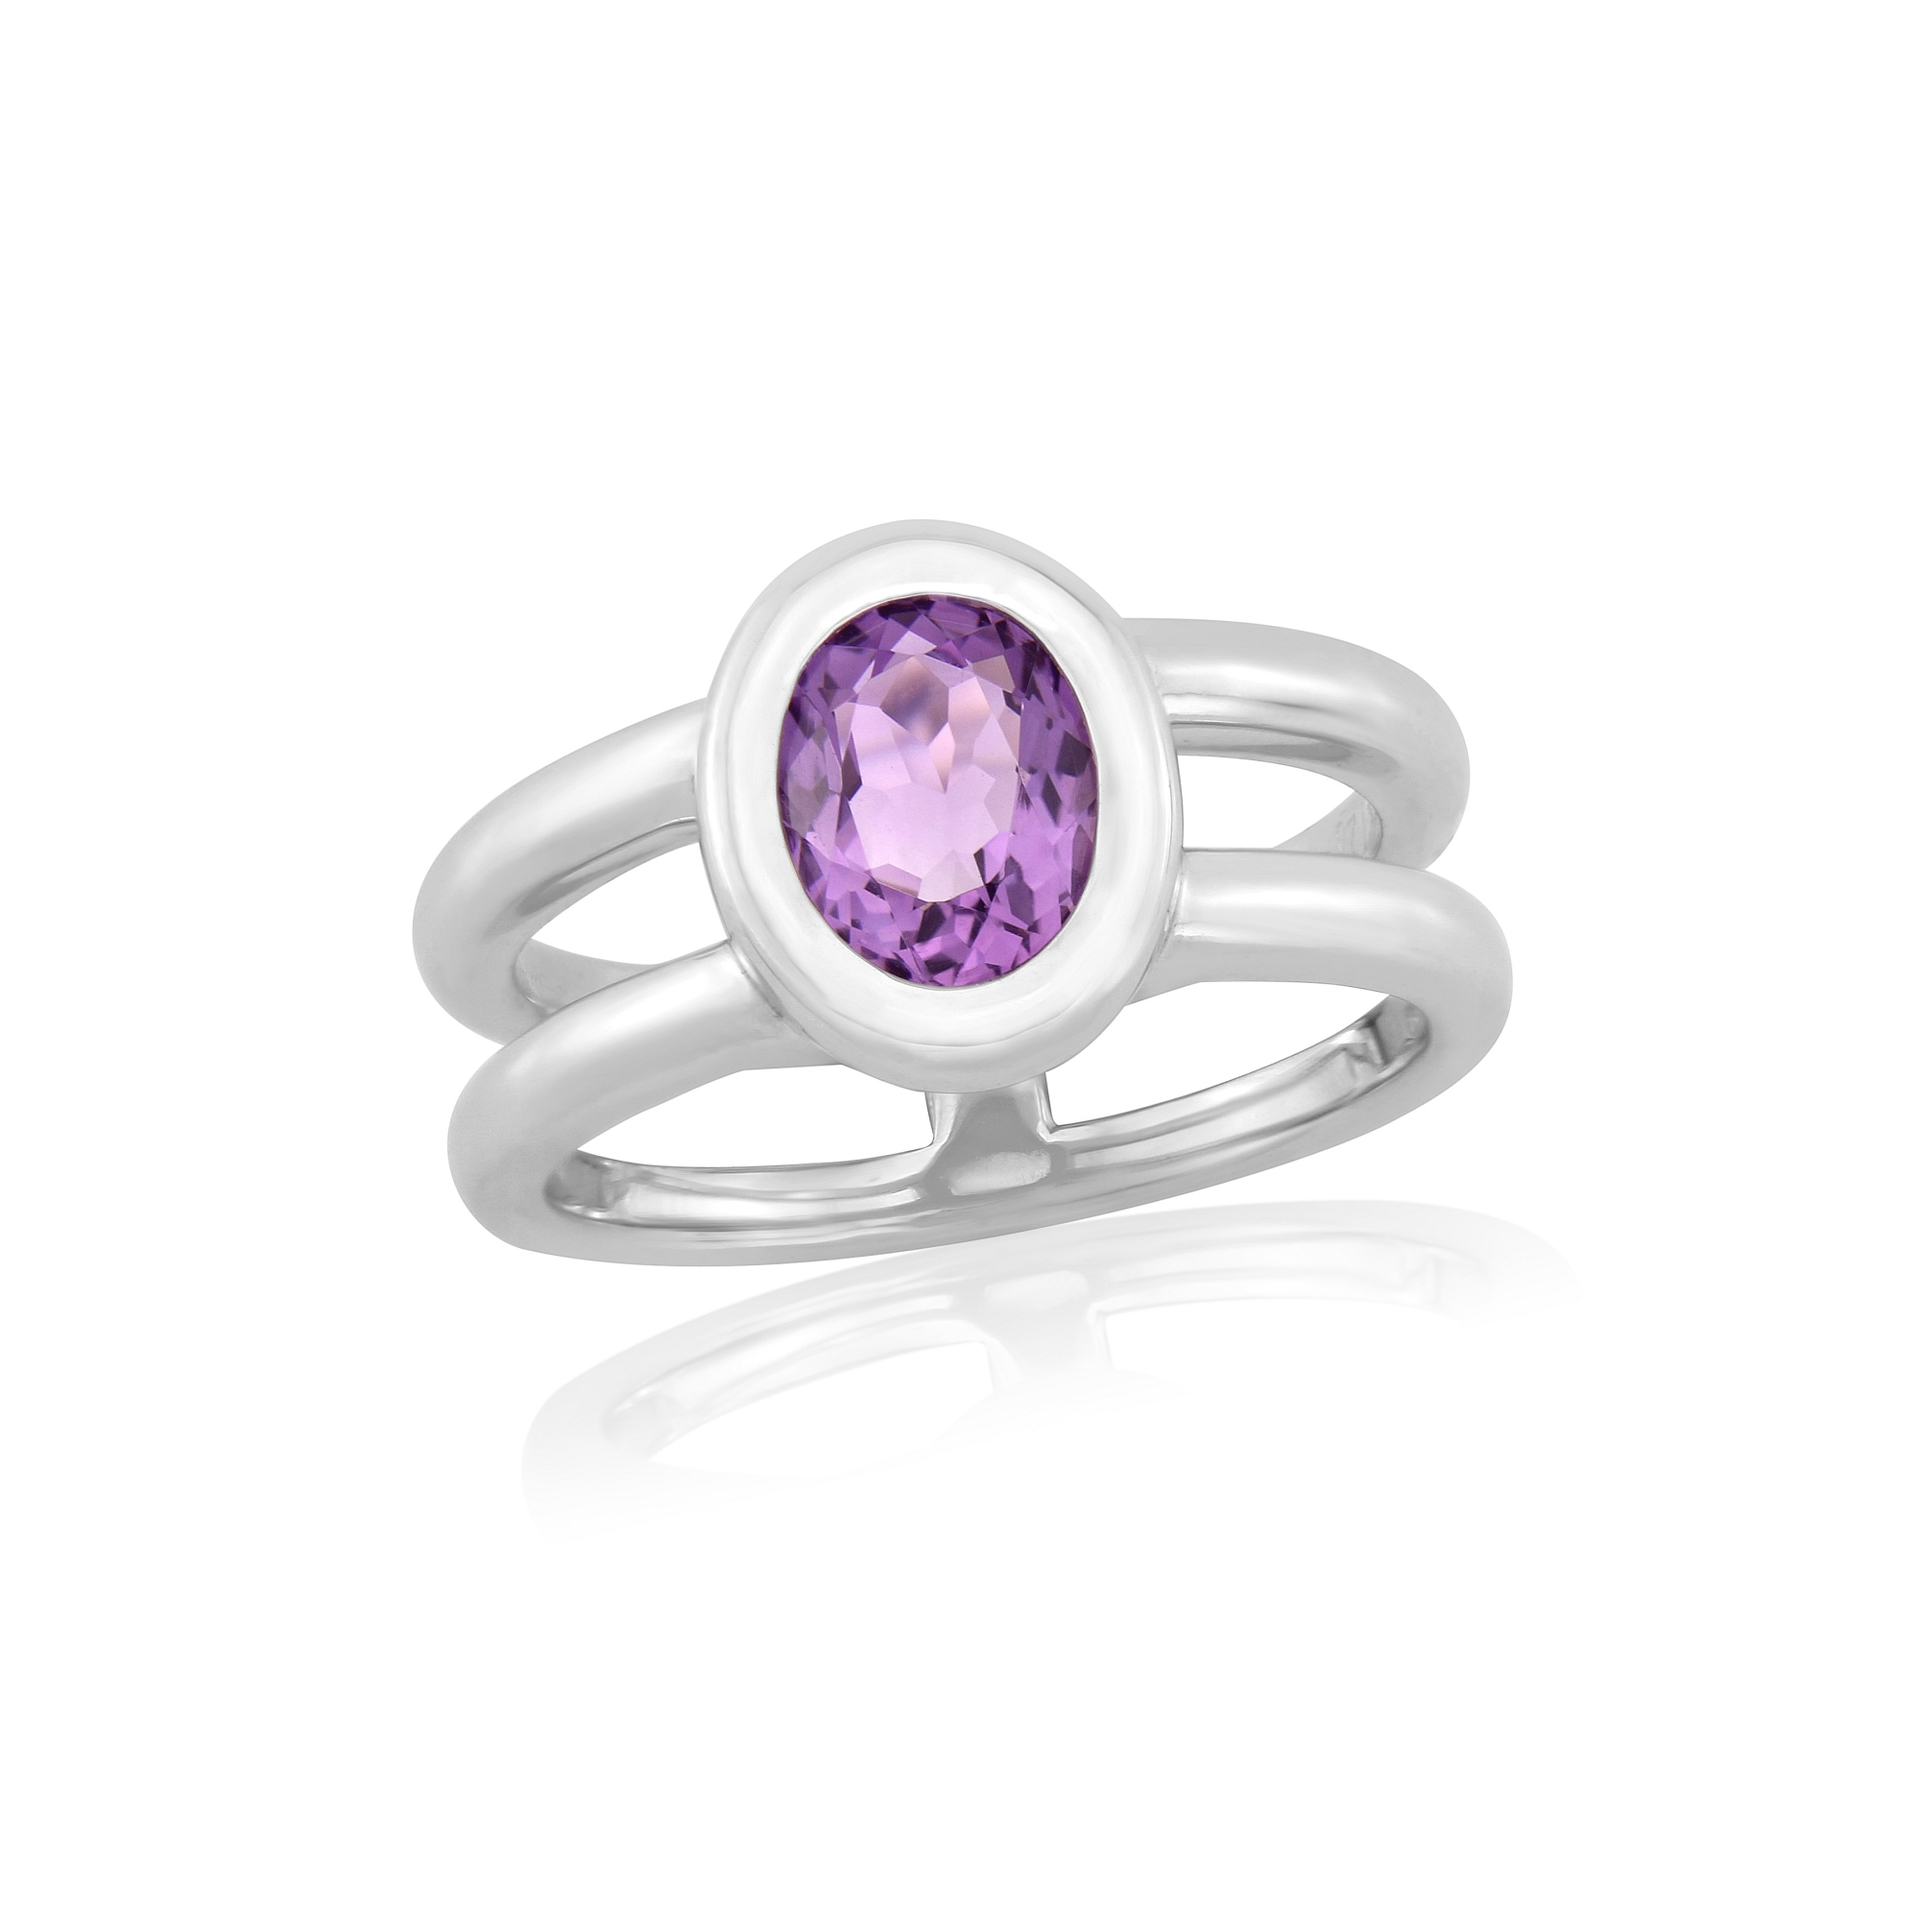 Twin collection Oval Cut Amethyst and Silver Ring